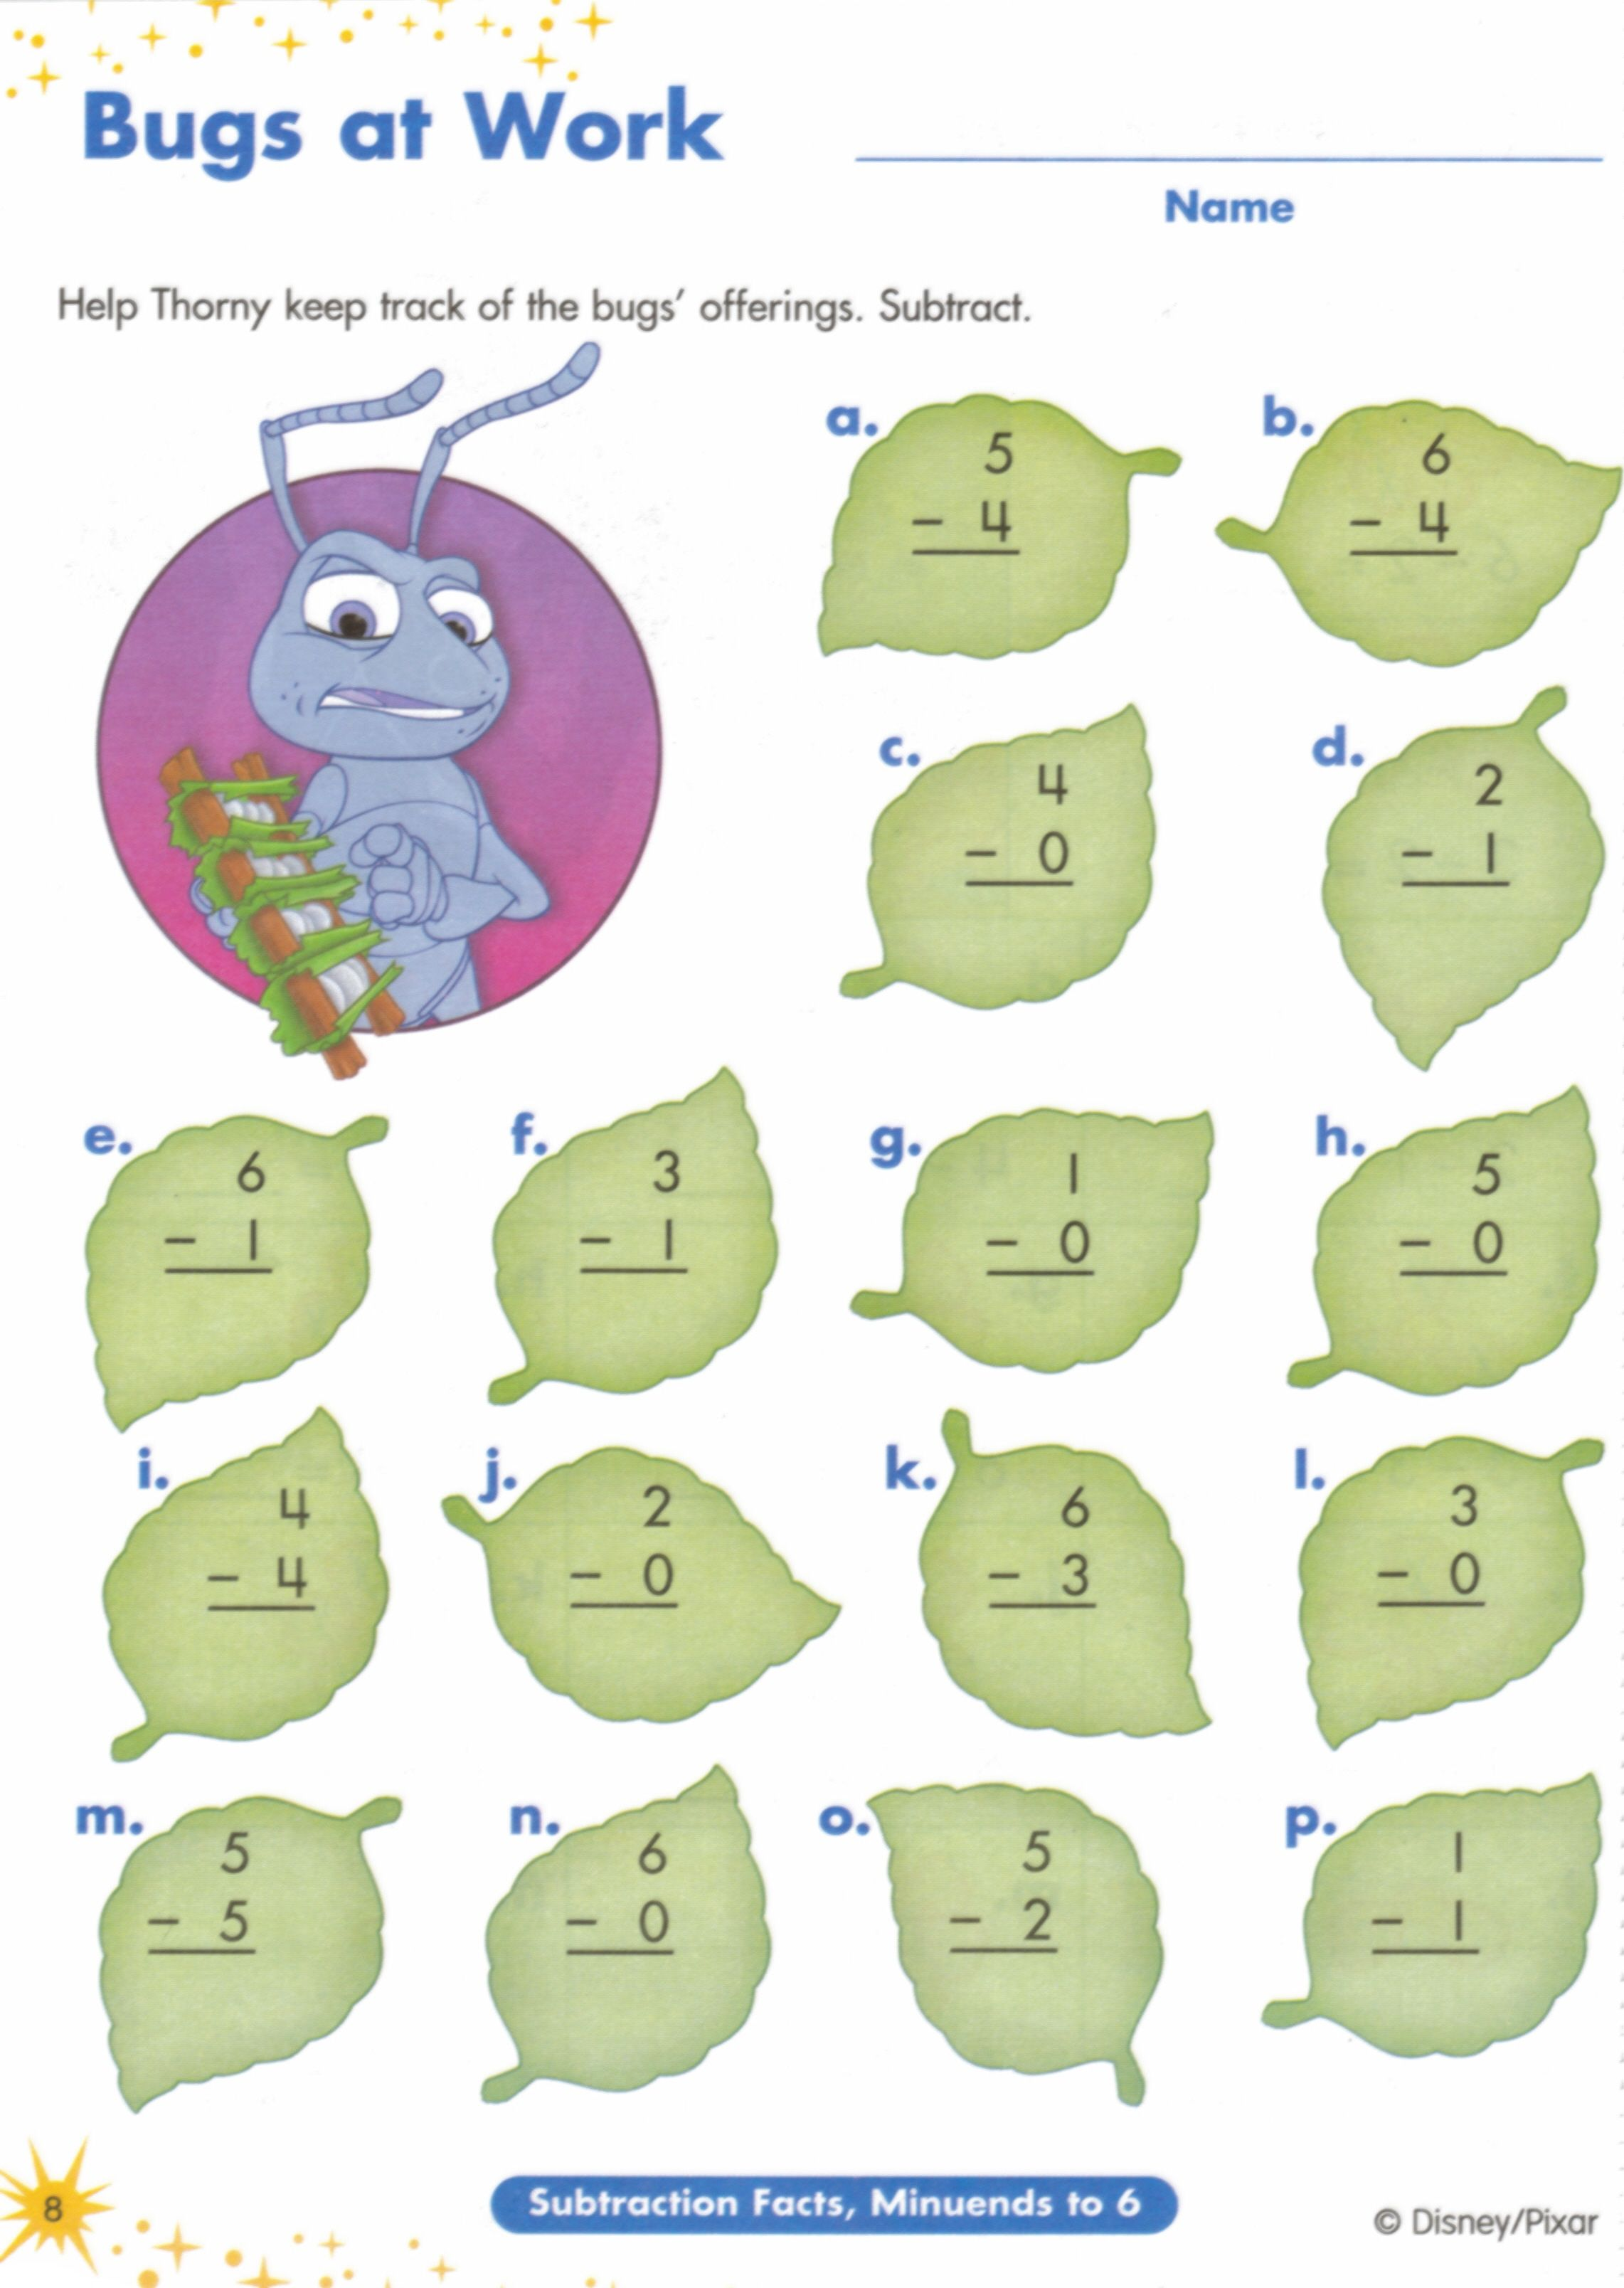 Weirdmailus  Remarkable  Images About Worksheets On Pinterest  Fun Facts For Kids  With Goodlooking  Images About Worksheets On Pinterest  Fun Facts For Kids Earth Day Worksheets And Jungles With Endearing Abc Tracing Worksheets Free Also Mathematics Multiplication Worksheets In Addition Conjugating Verbs Worksheet And Place Value Worksheets For Grade  As Well As How To Brush Your Teeth Worksheet Additionally Isotope Worksheets From Pinterestcom With Weirdmailus  Goodlooking  Images About Worksheets On Pinterest  Fun Facts For Kids  With Endearing  Images About Worksheets On Pinterest  Fun Facts For Kids Earth Day Worksheets And Jungles And Remarkable Abc Tracing Worksheets Free Also Mathematics Multiplication Worksheets In Addition Conjugating Verbs Worksheet From Pinterestcom